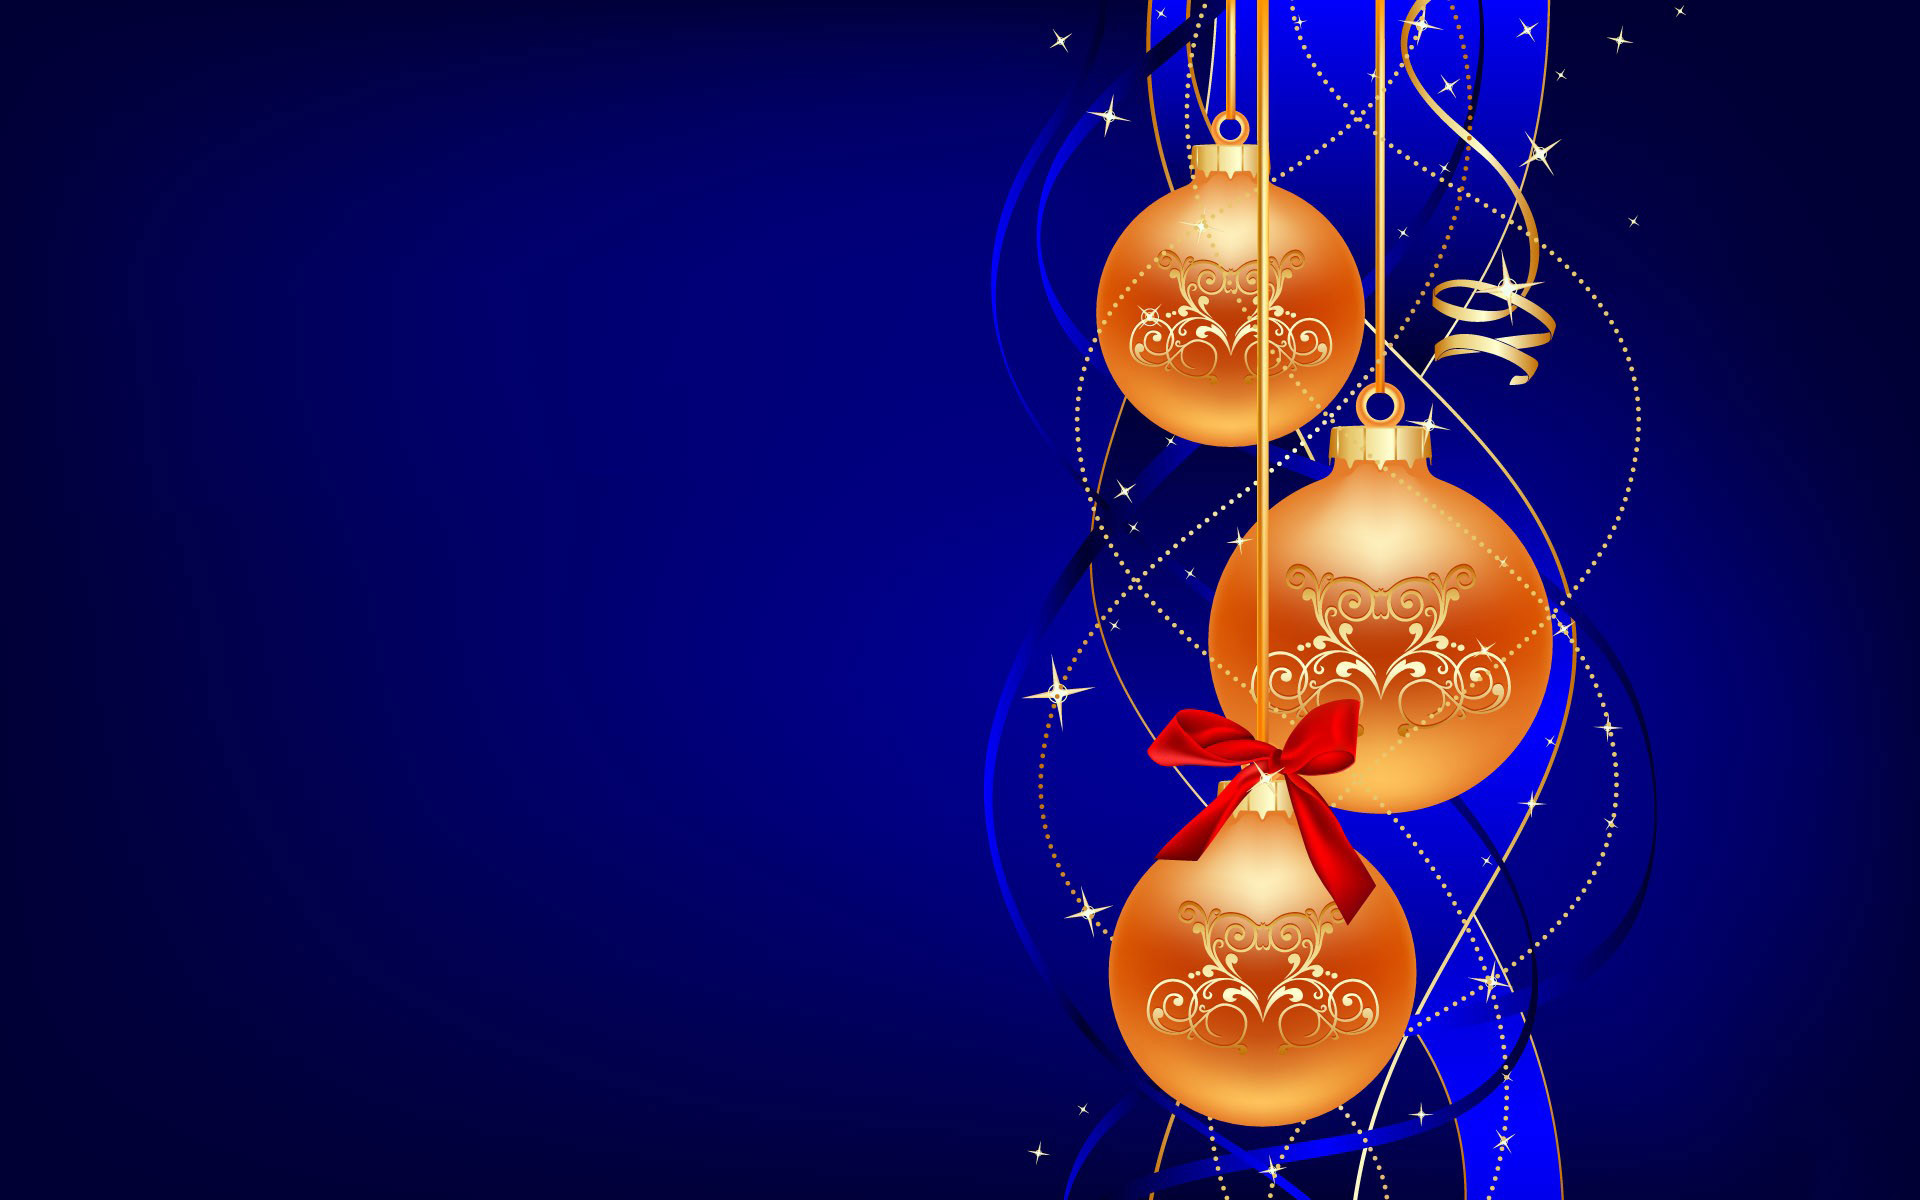 Holiday Screensaver For Windows And Free Live Wallpaper - Happy New Year 2019 Marathi , HD Wallpaper & Backgrounds